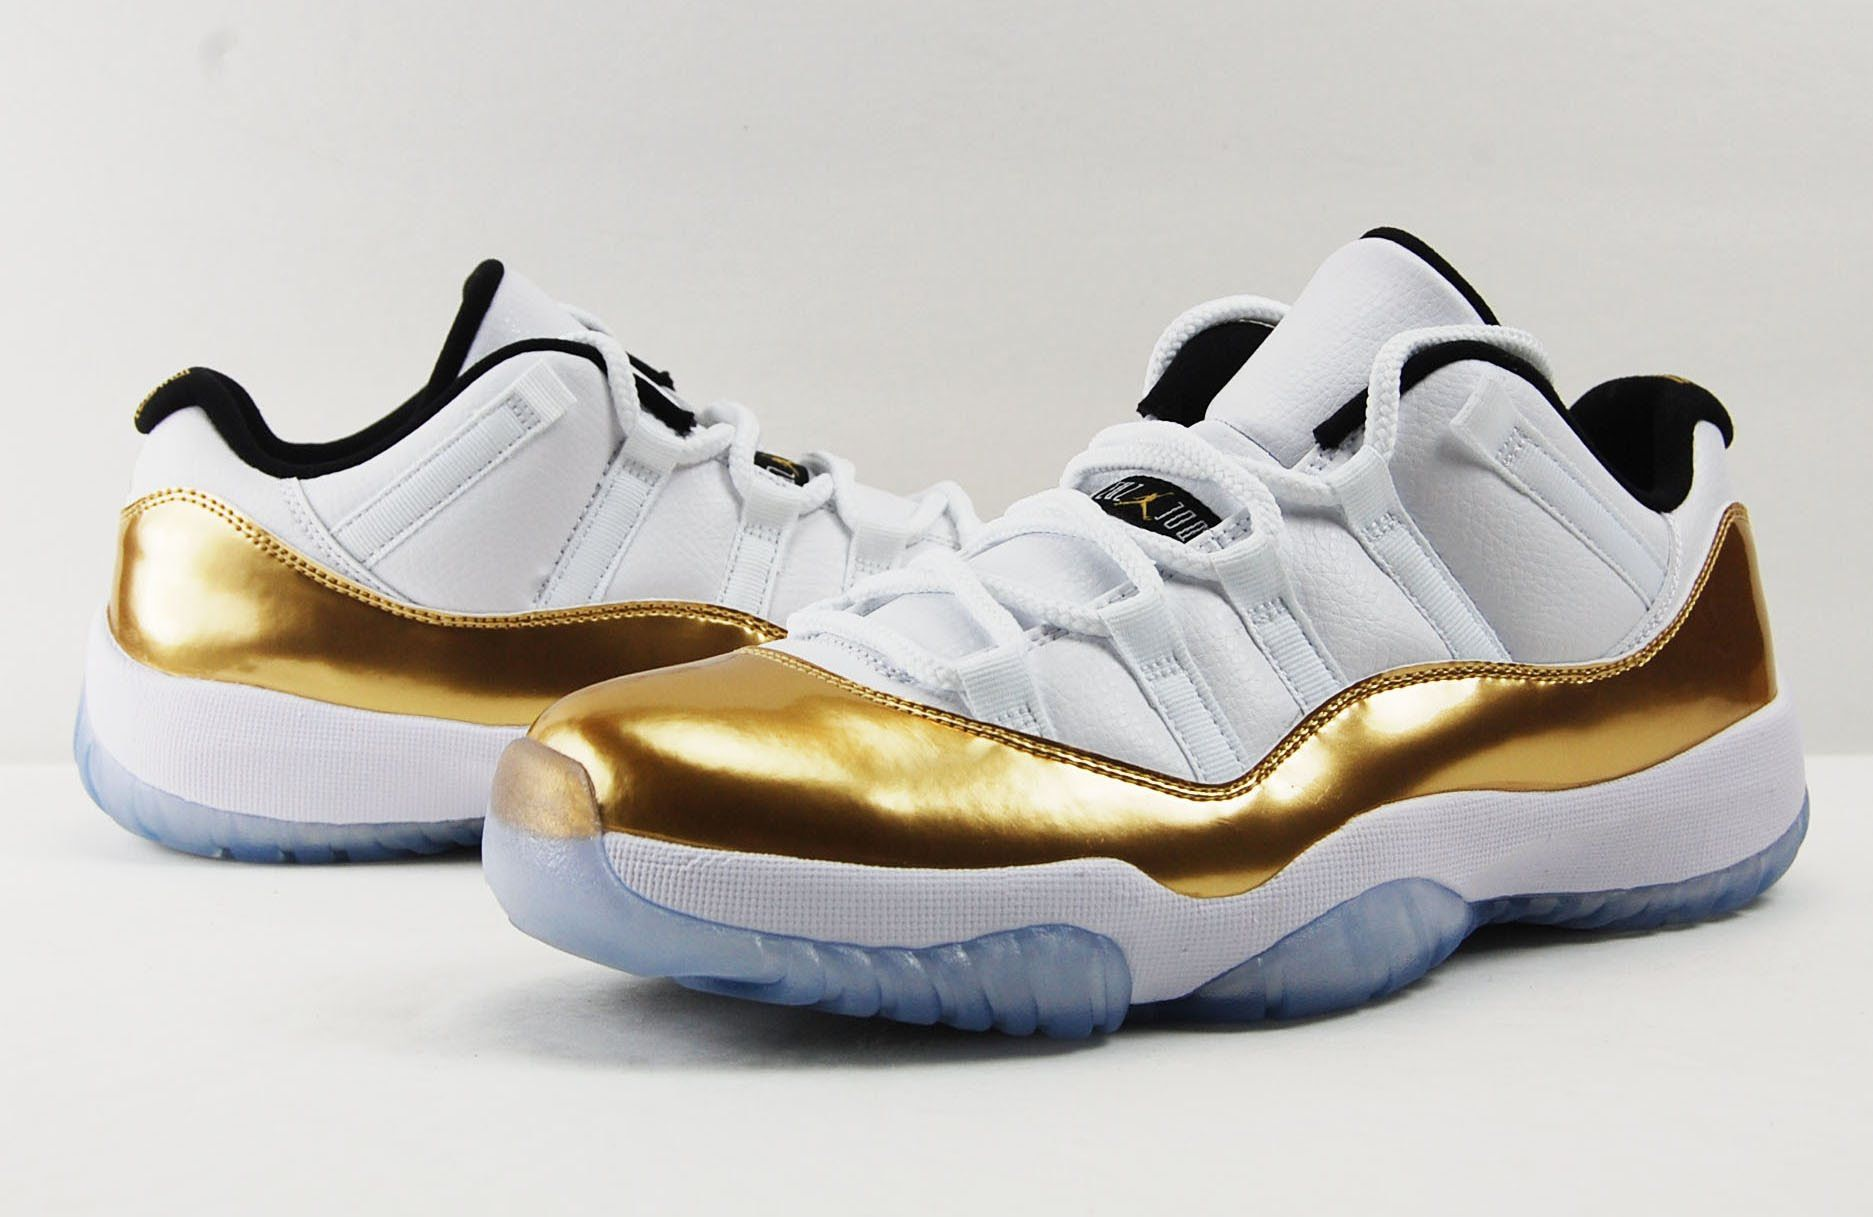 4b46e4570ad5 Video  Air Jordan 11 Low Closing Ceremony. Make sure to Subscribe ...